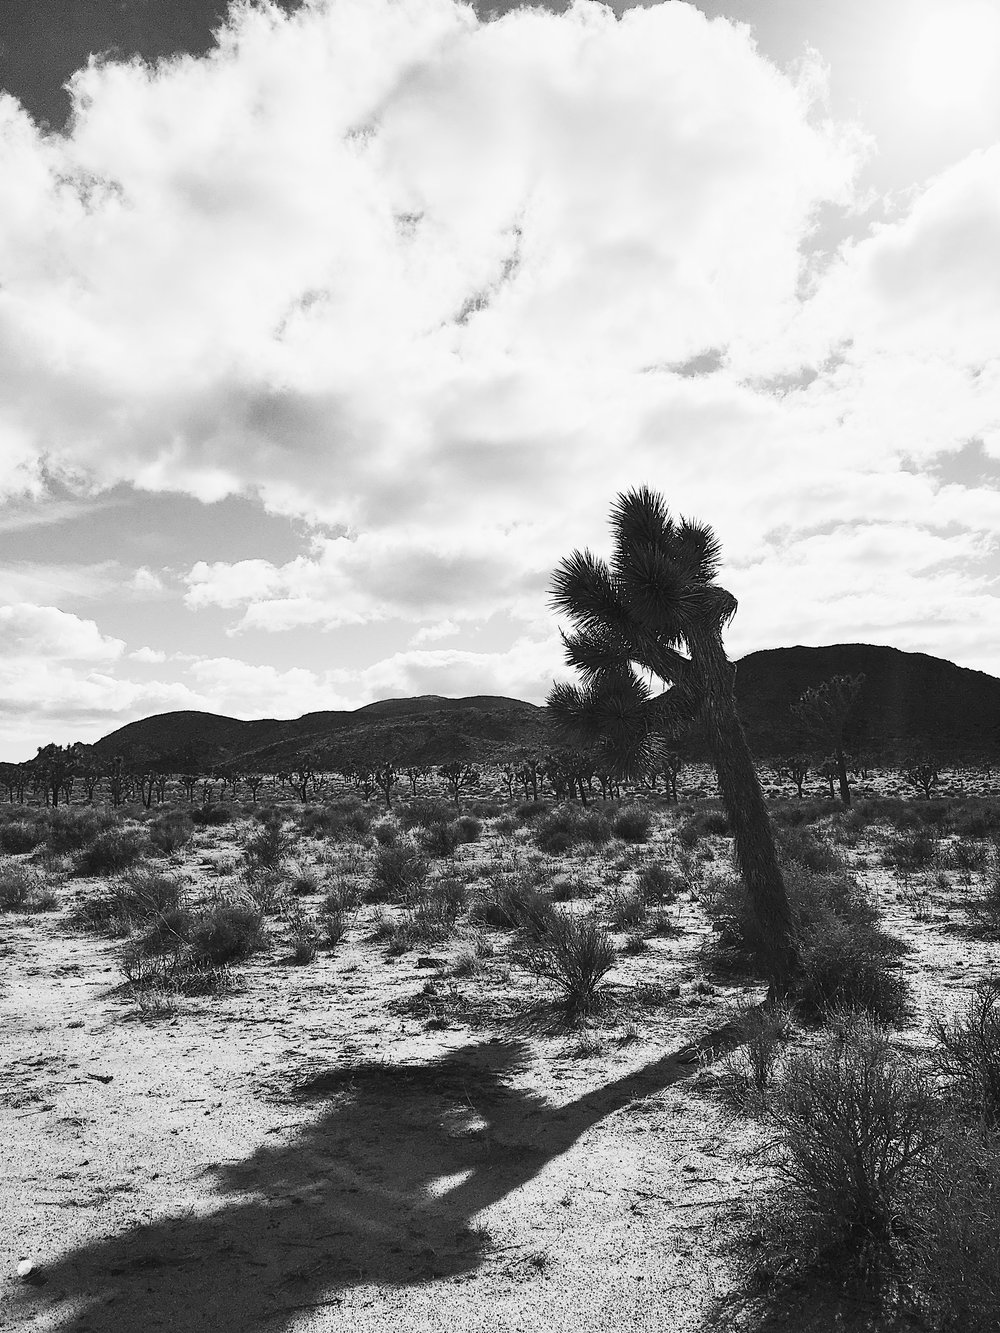 Joshua-Tree-National-Park-Mary-Kate-Steele-Photography